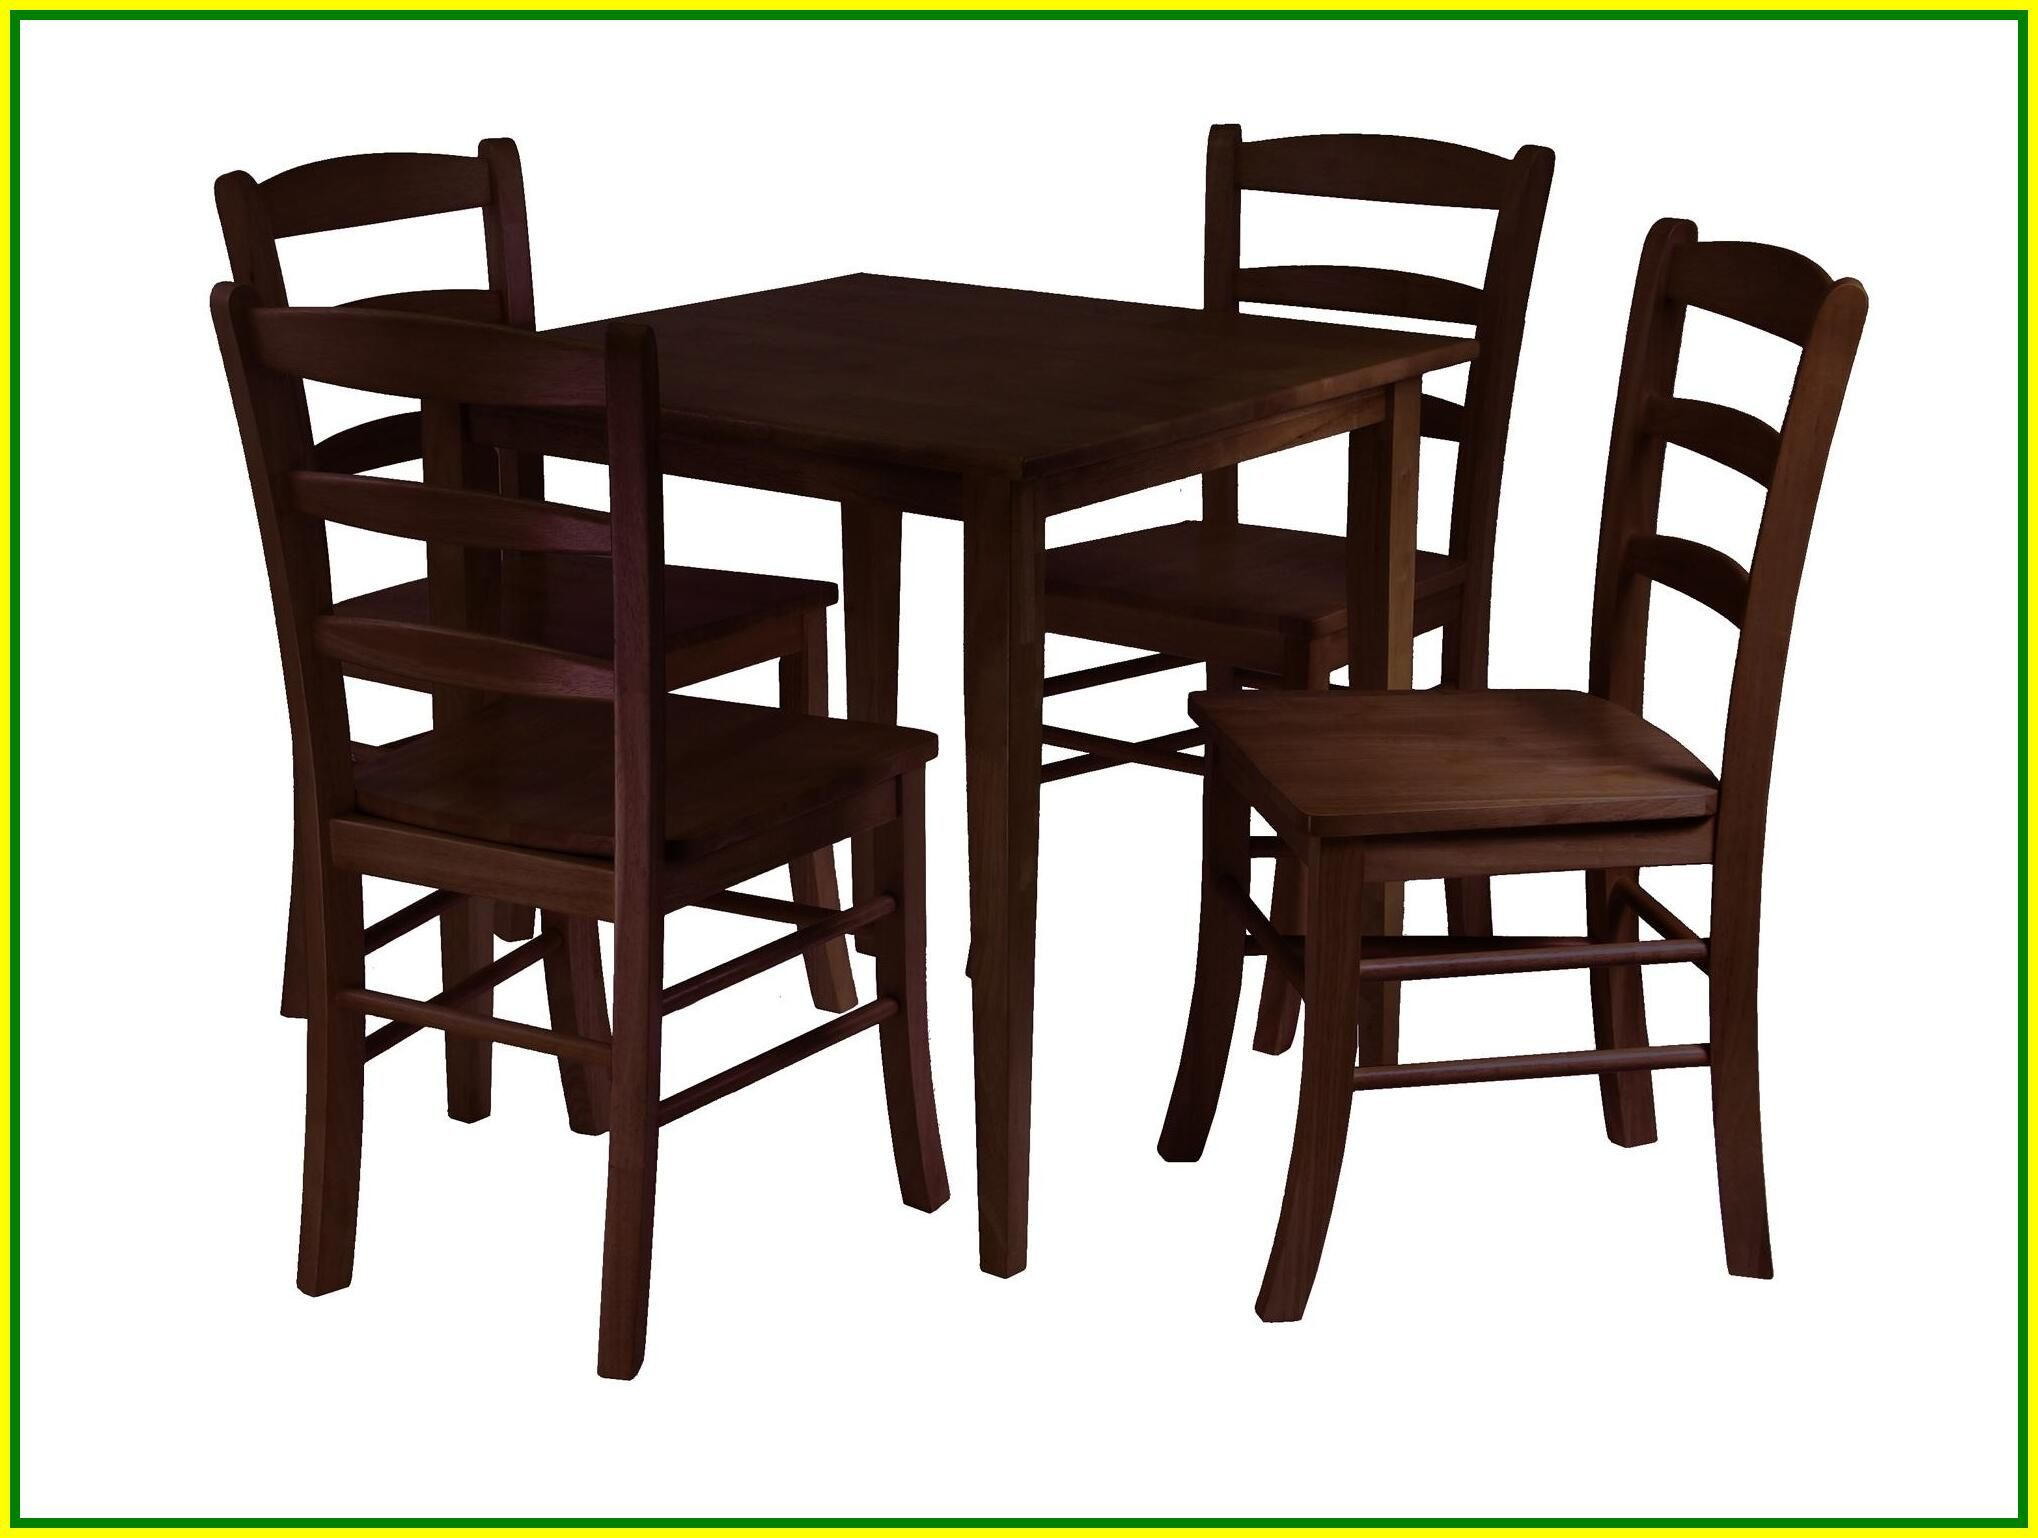 83 reference of square kitchen table and chairs for 4 in